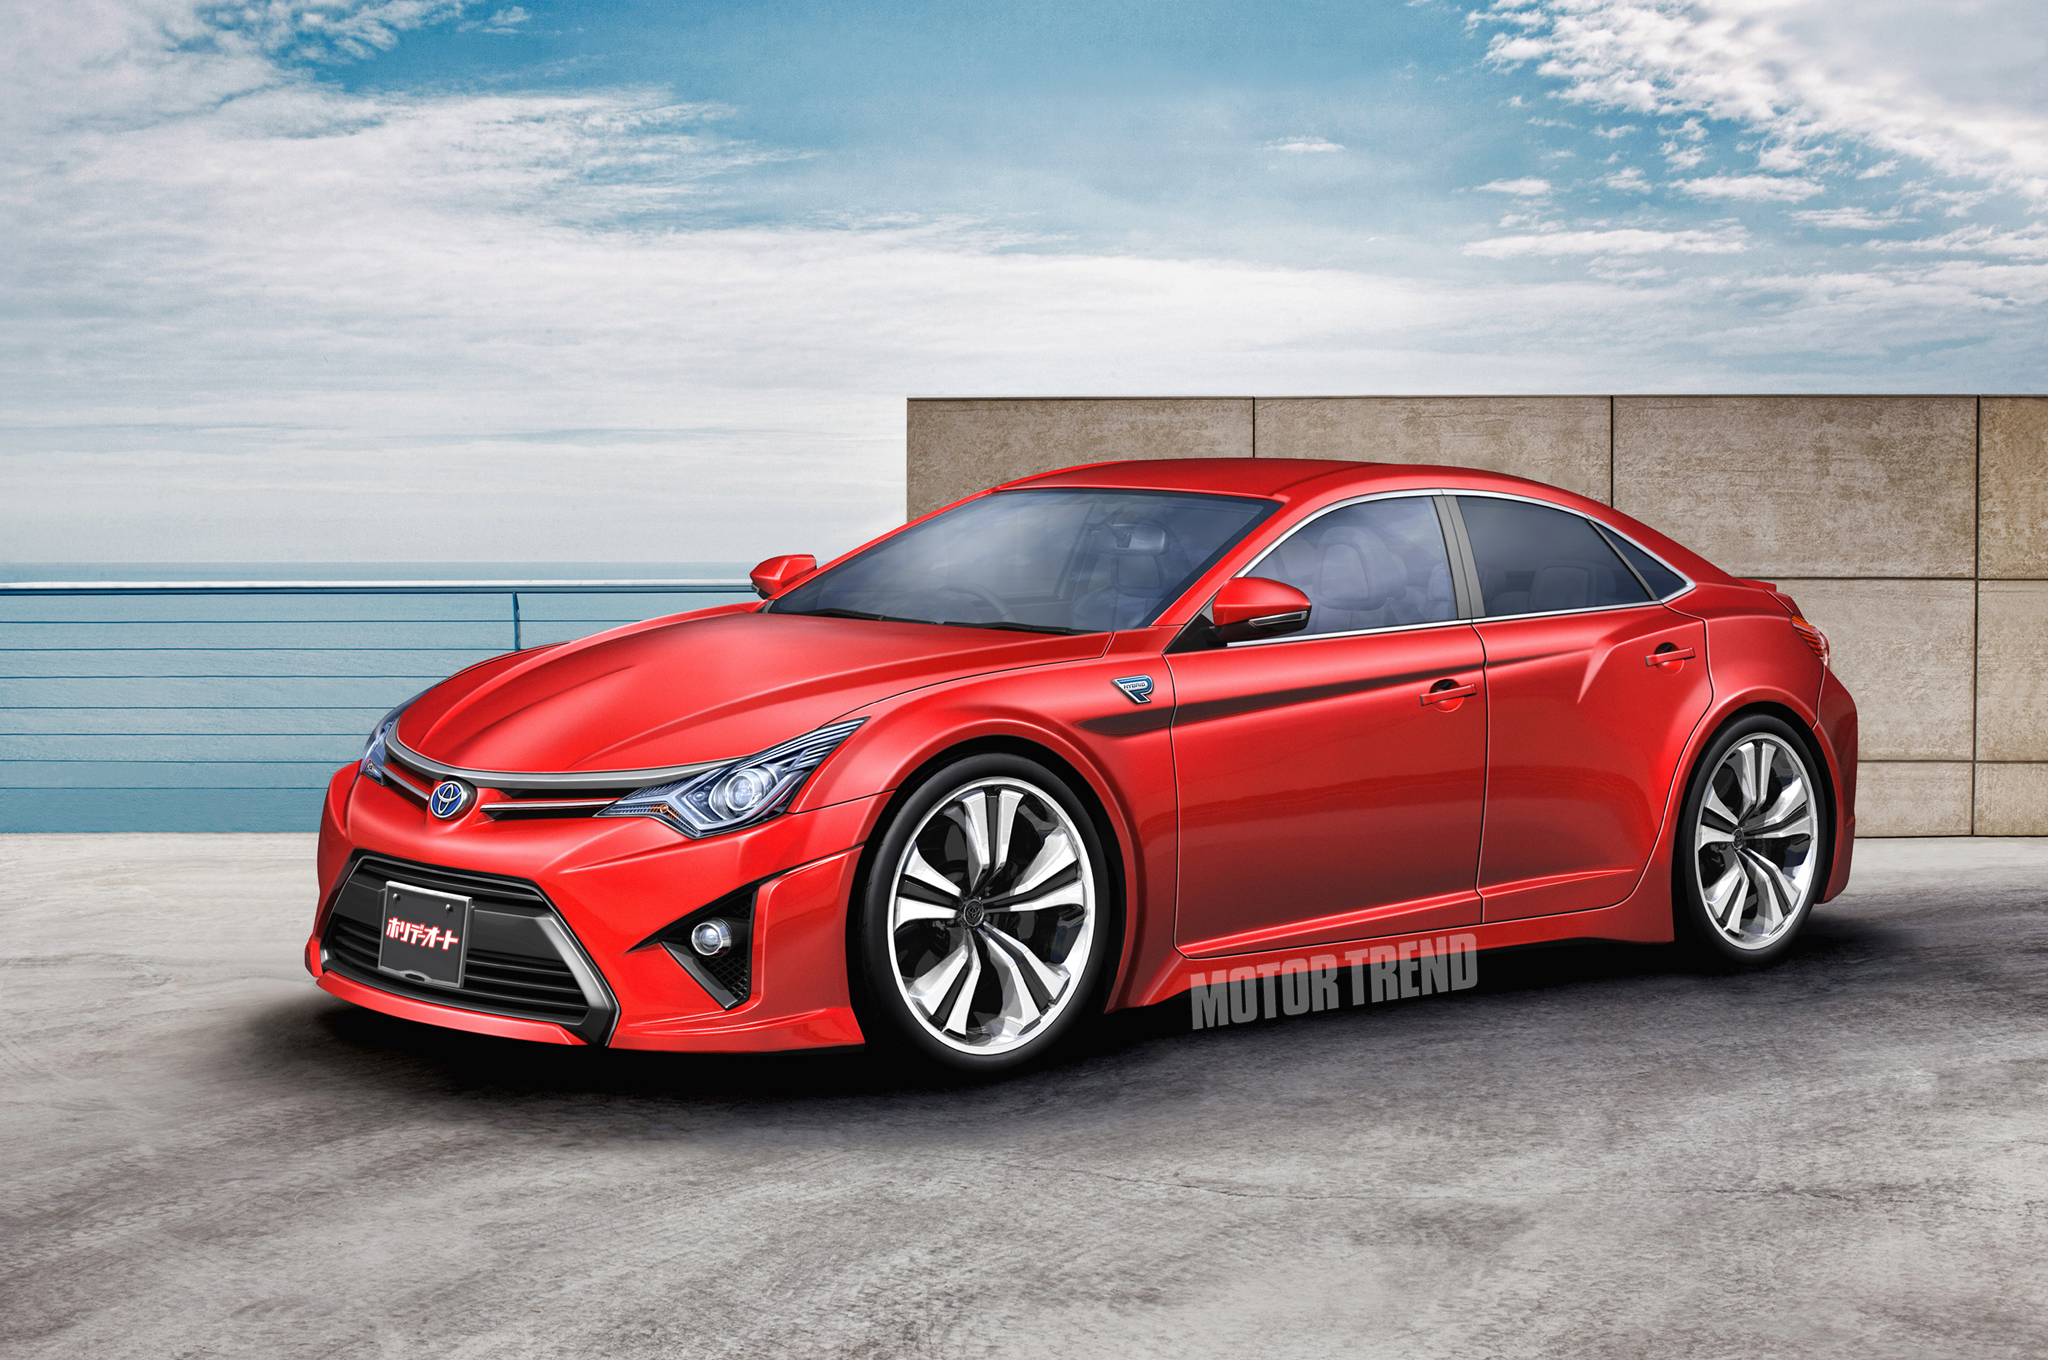 2015 Scion FR S Information and photos ZombieDrive